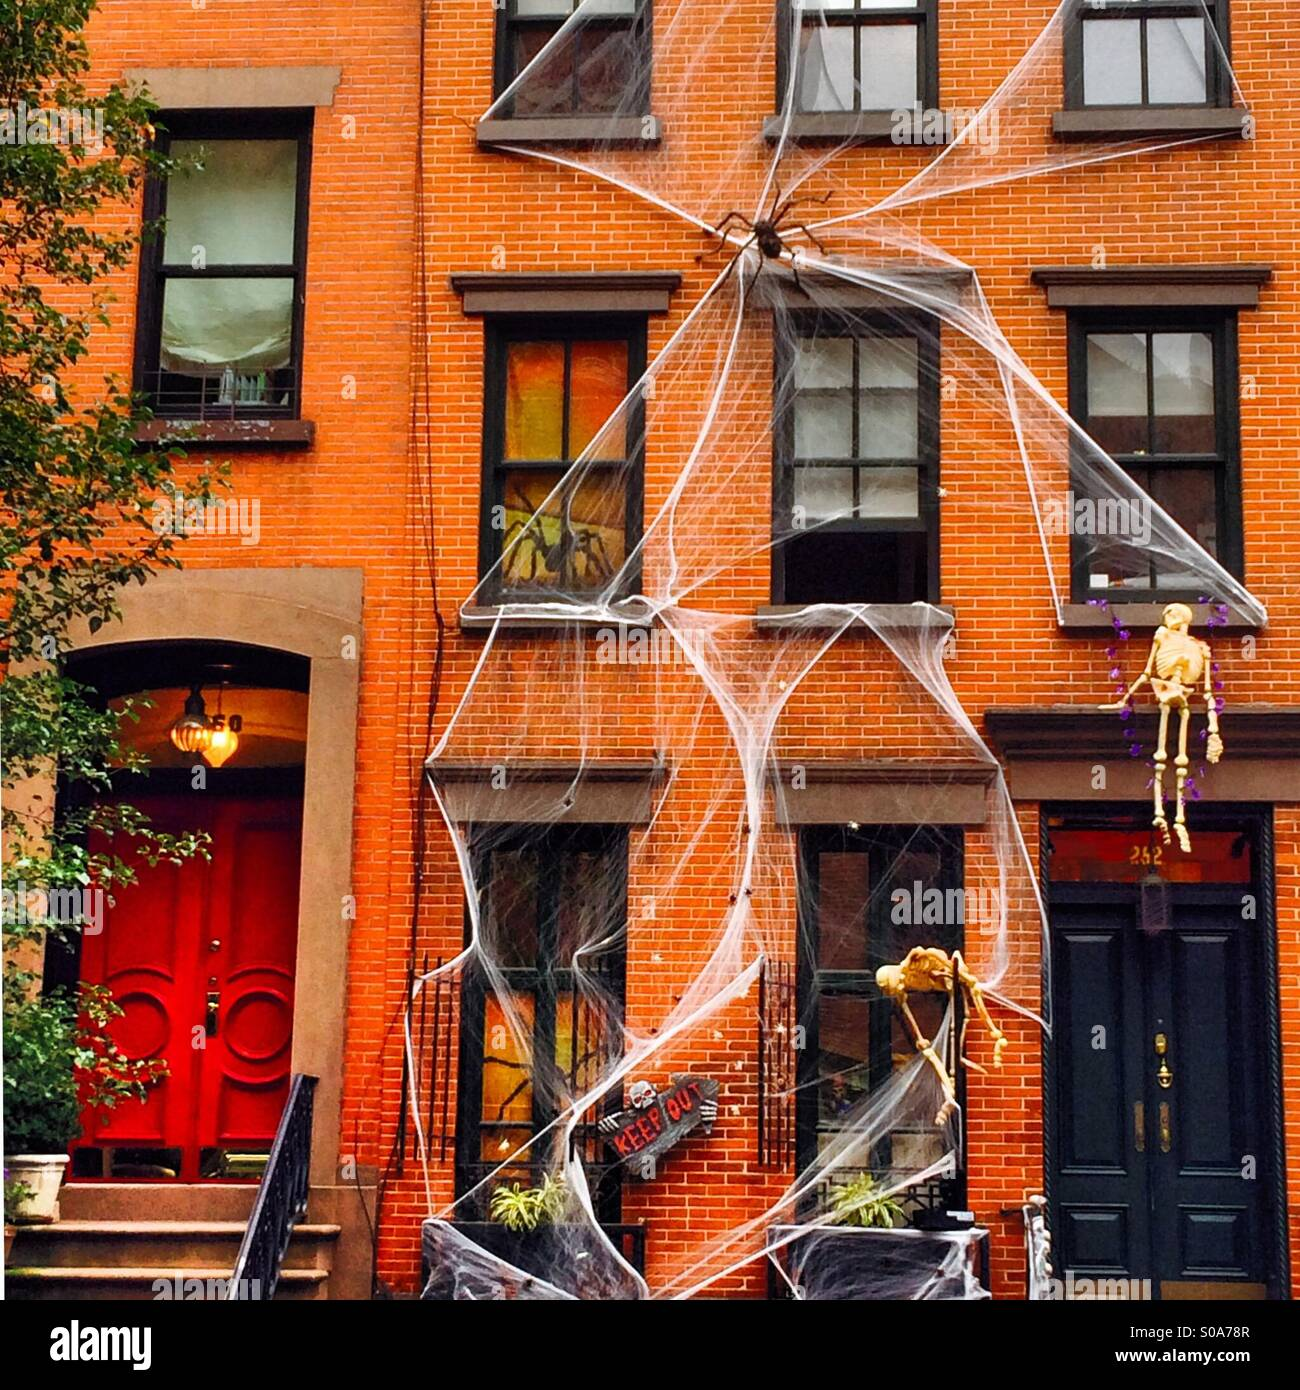 Halloween Decorations In Chelsea New York City Stock Photo Royalty Free Image 310011879 Alamy